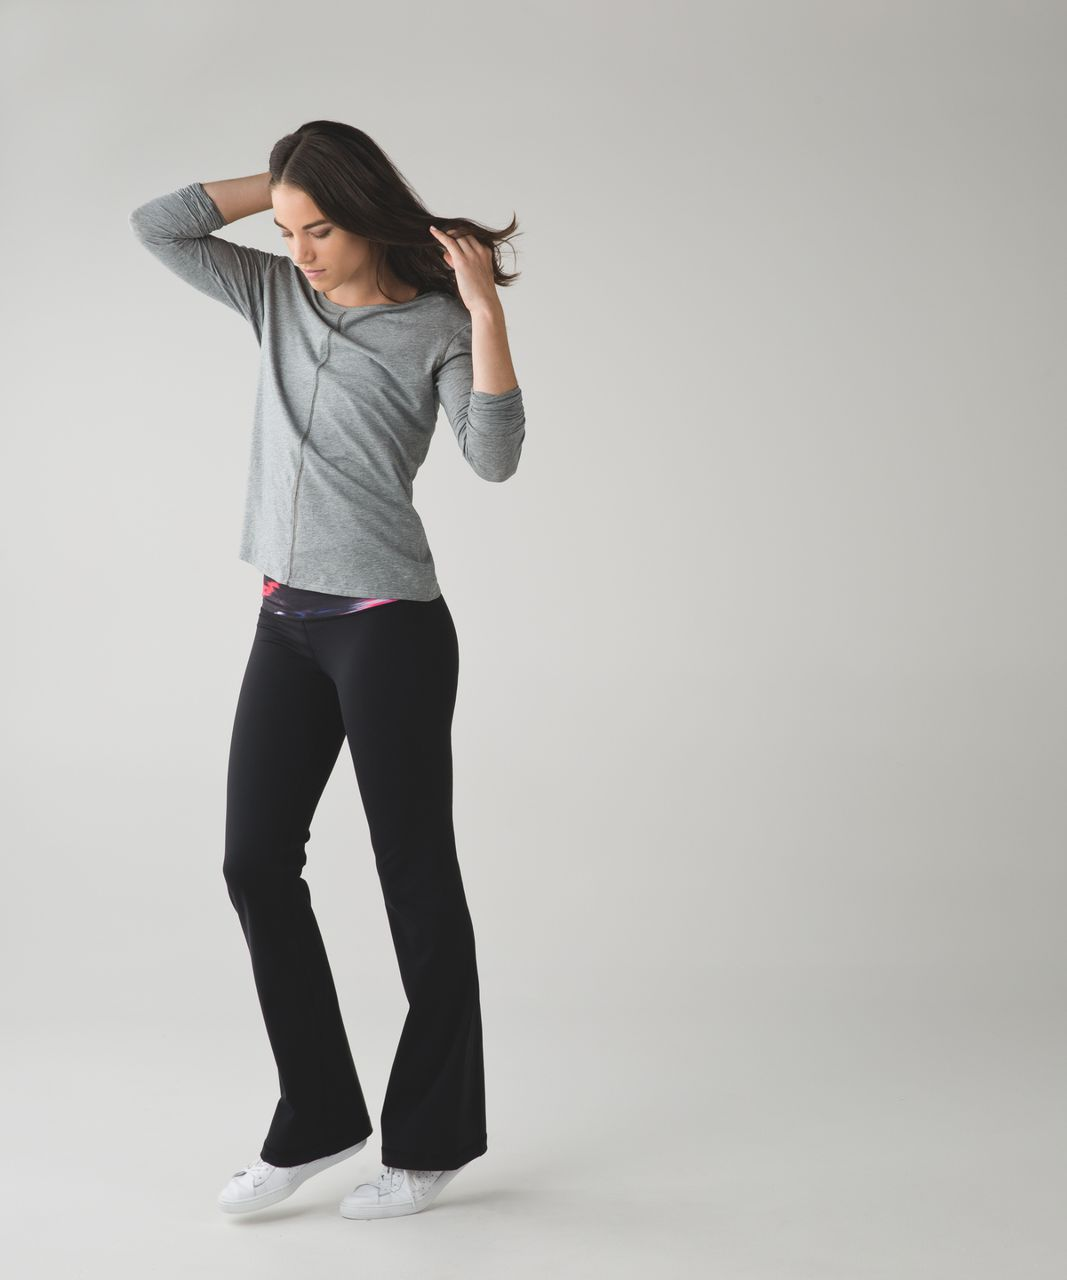 Lululemon Groove Pant III (Regular) - Black / Pigment Wind White Multi